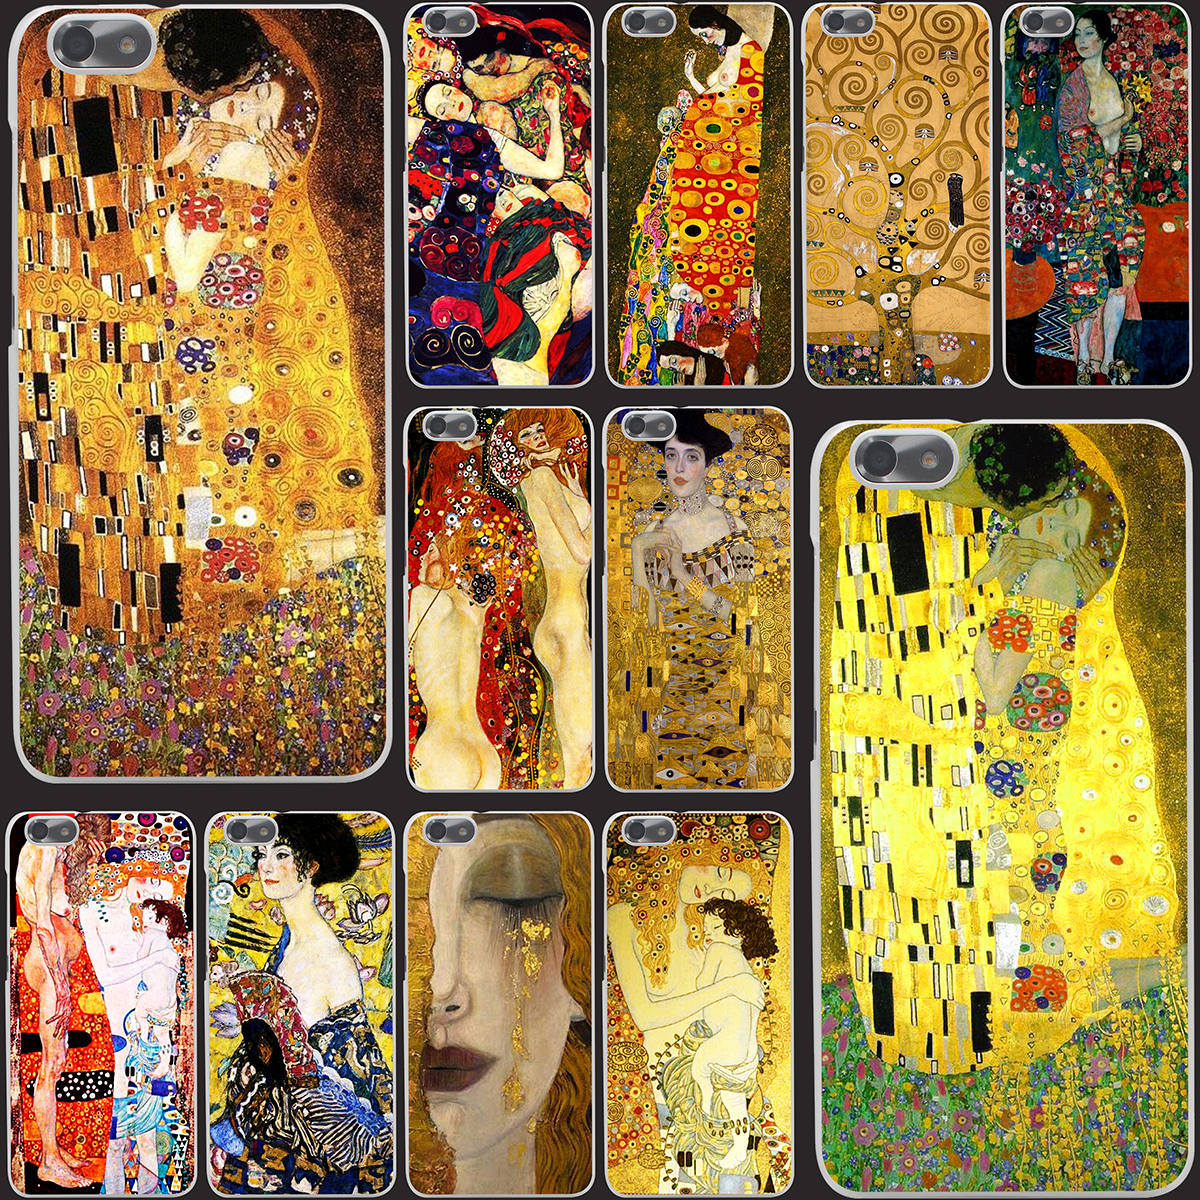 8731-OIE Kiss by Gustav Klimt Hard Case Cover for Huawei P6 P7 P8 Lite P9 Lite Plus & Honor 6 7 4C 4X G7